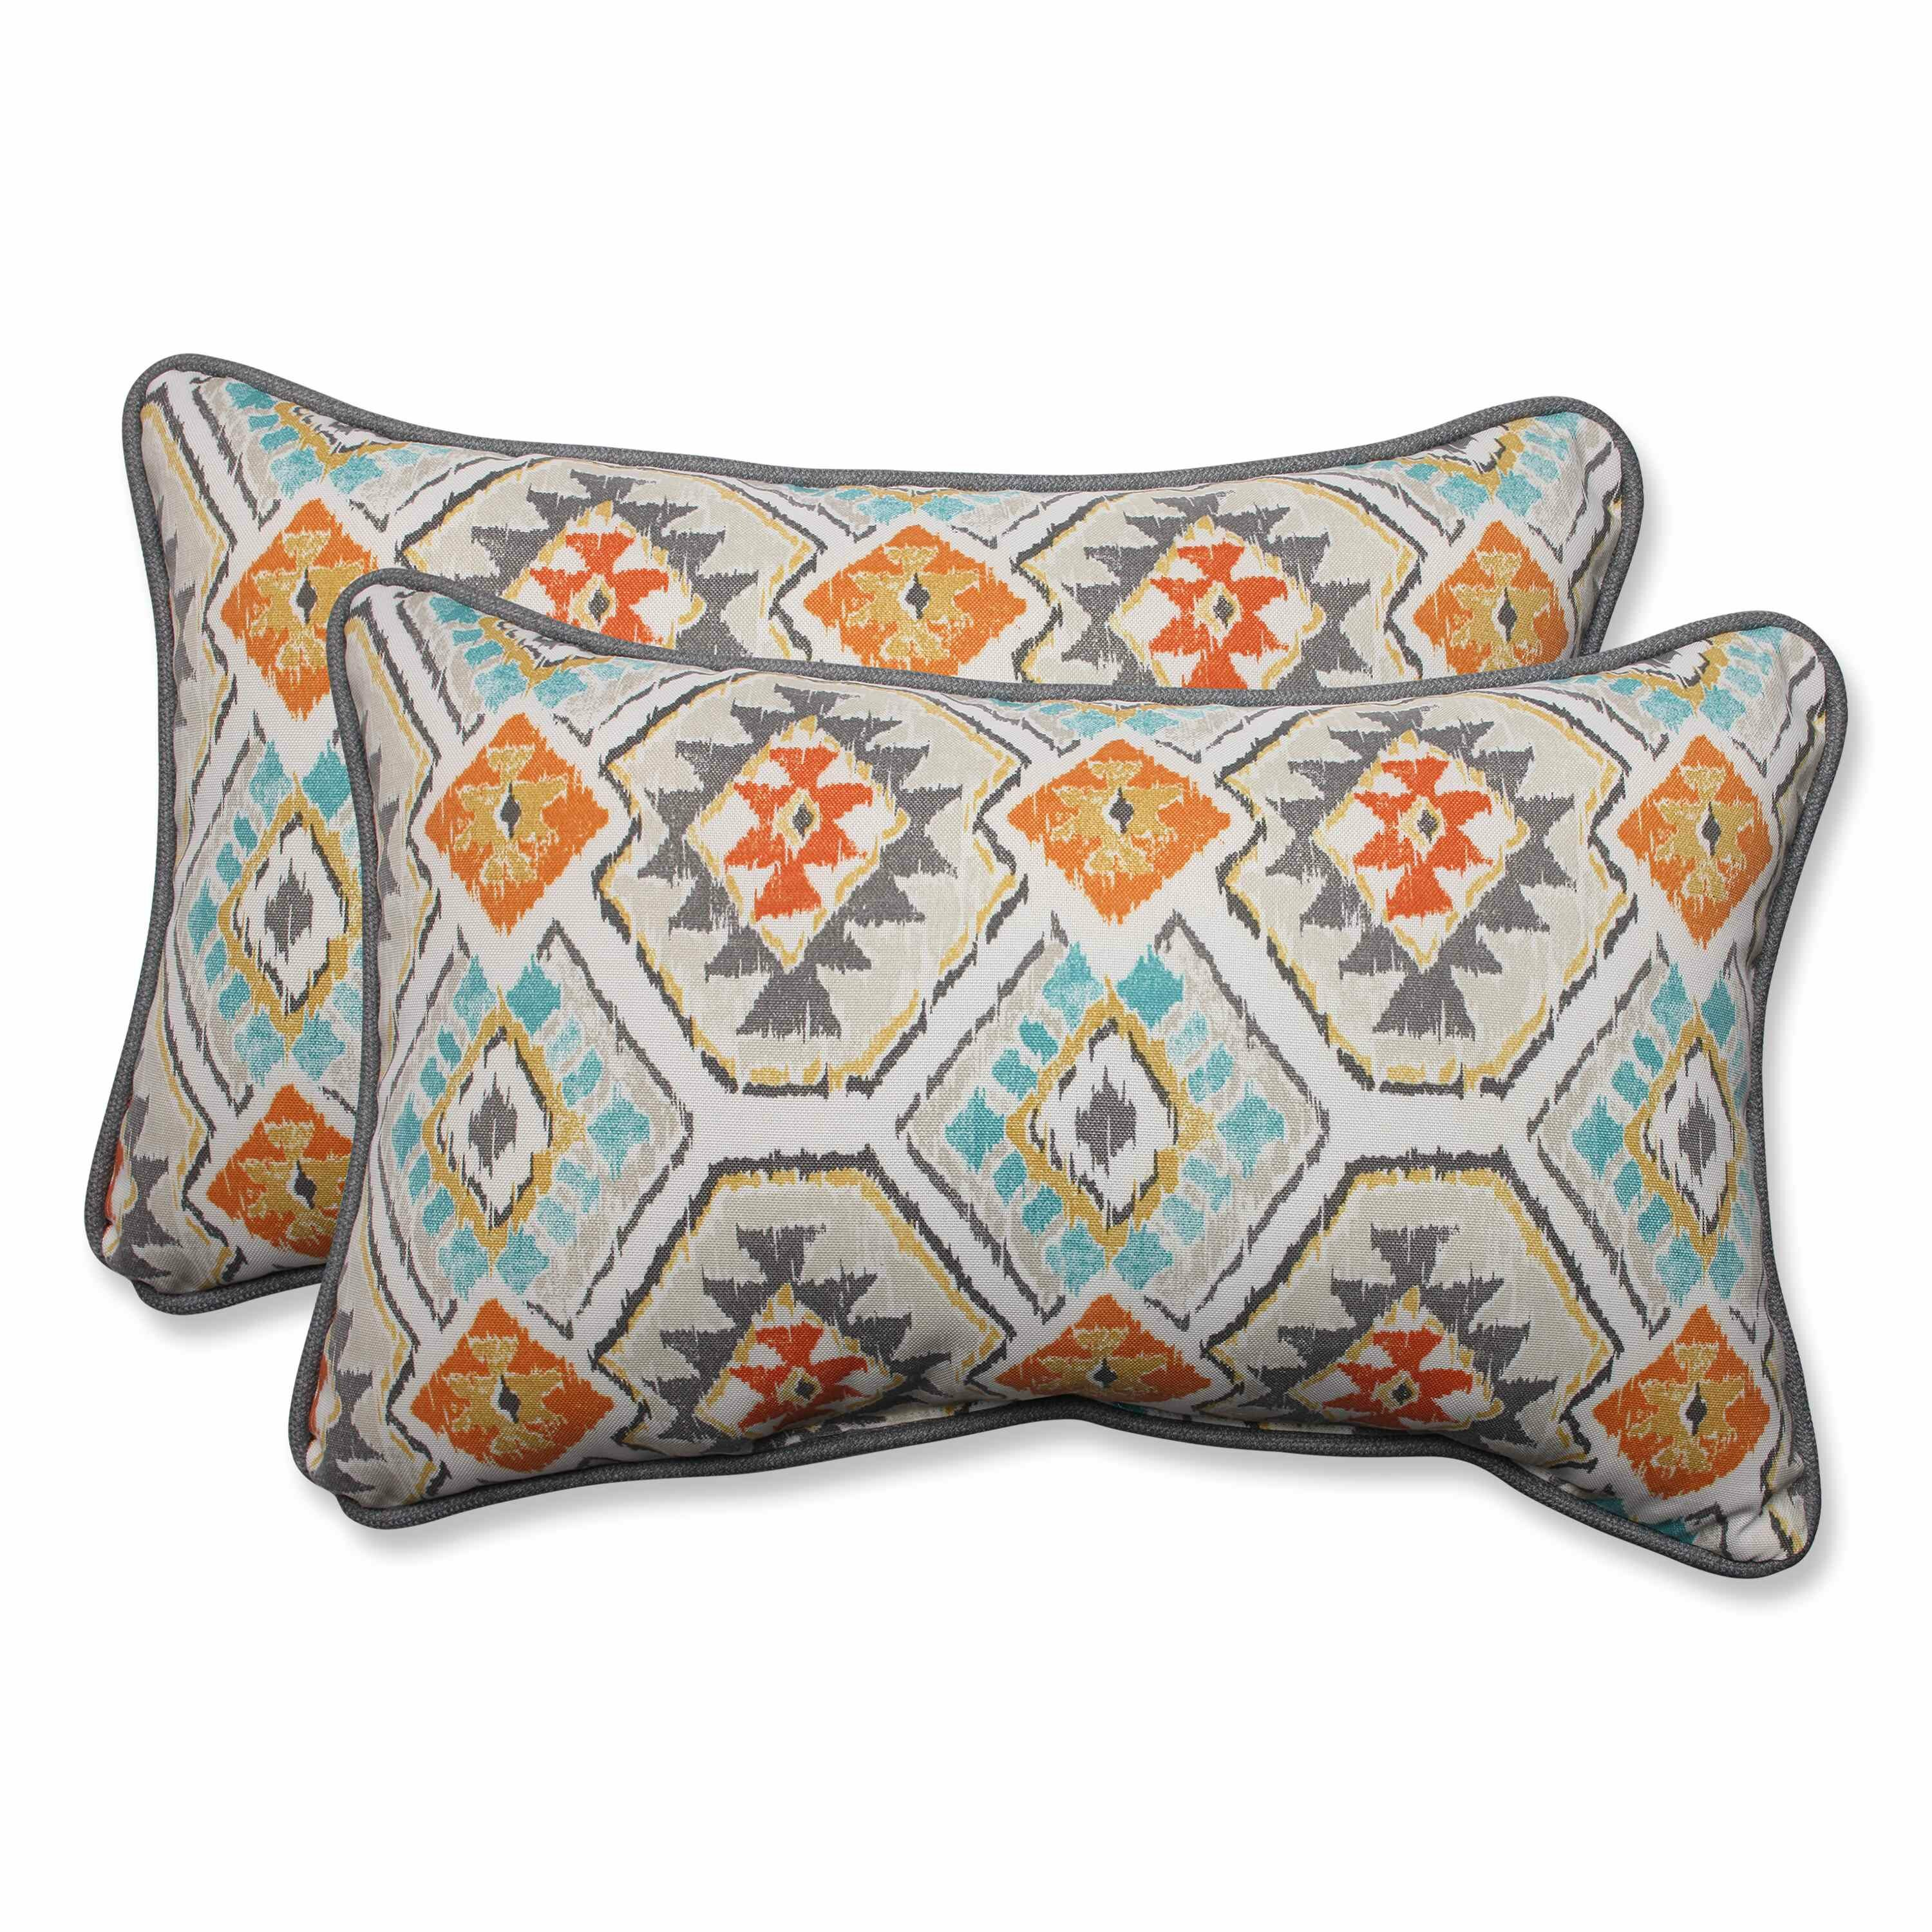 Throw Pillows In Abuja : Pillow Perfect Eresha Oasis Outdoor/Indoor Throw Pillow & Reviews Wayfair